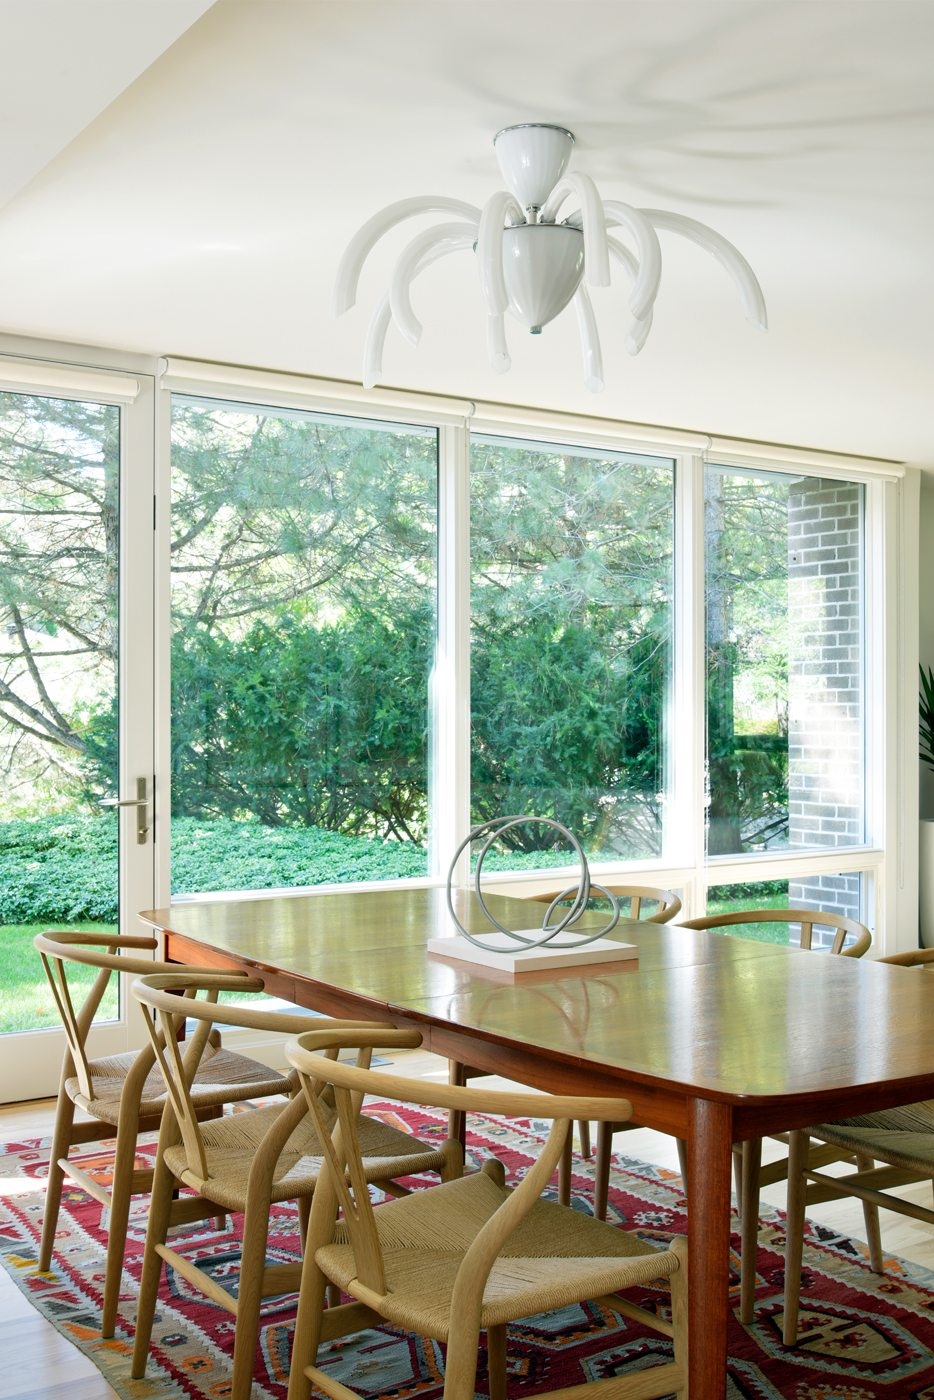 "In keeping with the vintage of the house, the Willcoxes sourced Hans Wegner Wishbone chairs  for their dining room. ""They're like a little piece of sculpture,"" says Debbie. The teak dining table was original to the house and purchased from the family, while the light fixture is Murano glass. Photos: Gordon King"